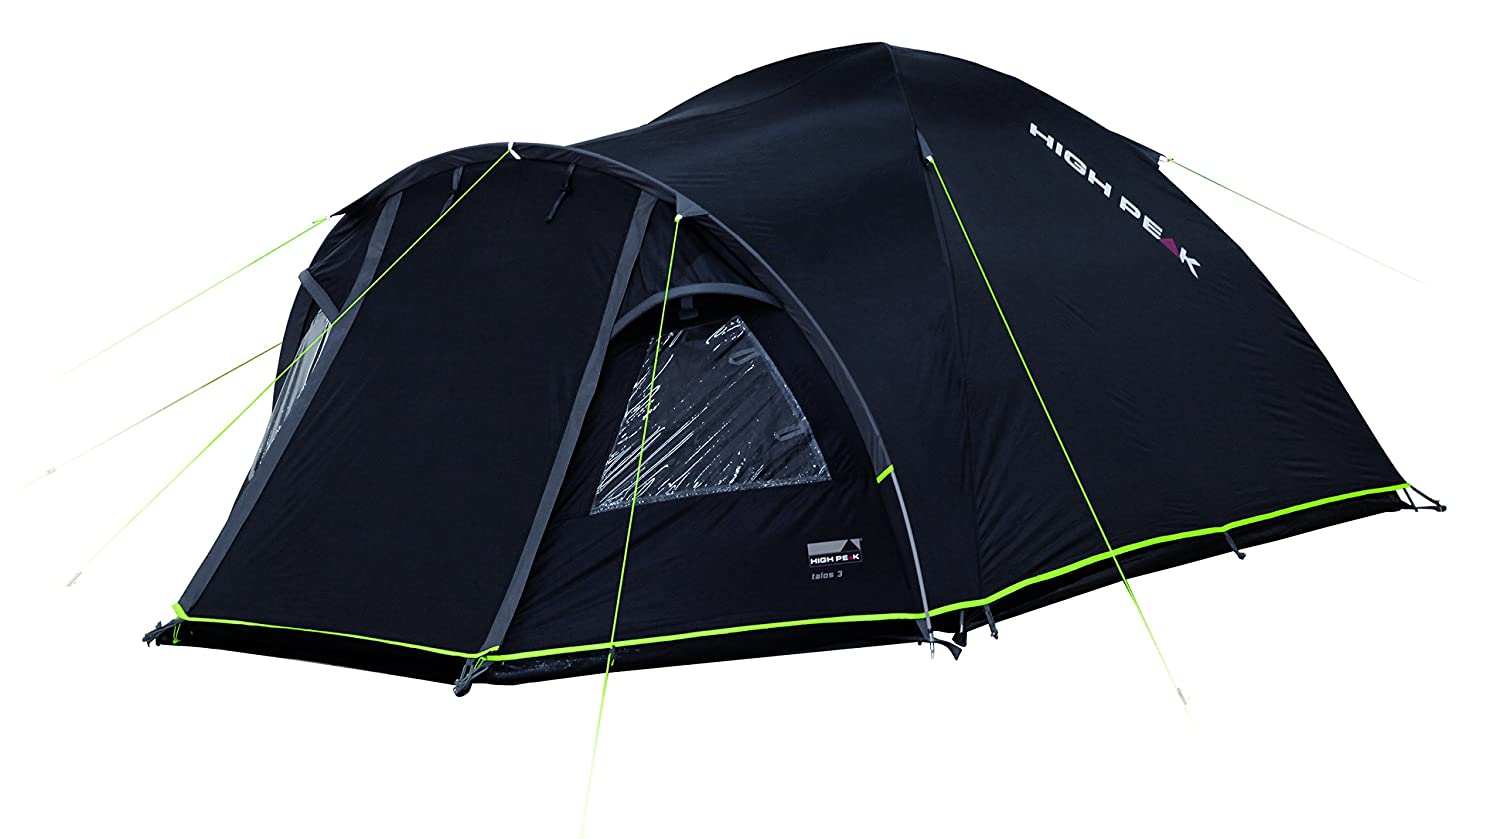 High Peak Unisex Talos 4 Tents Darkgrey Green One Size Amazonco Frame Tenda Fiber Untuk Dome Sports Outdoors